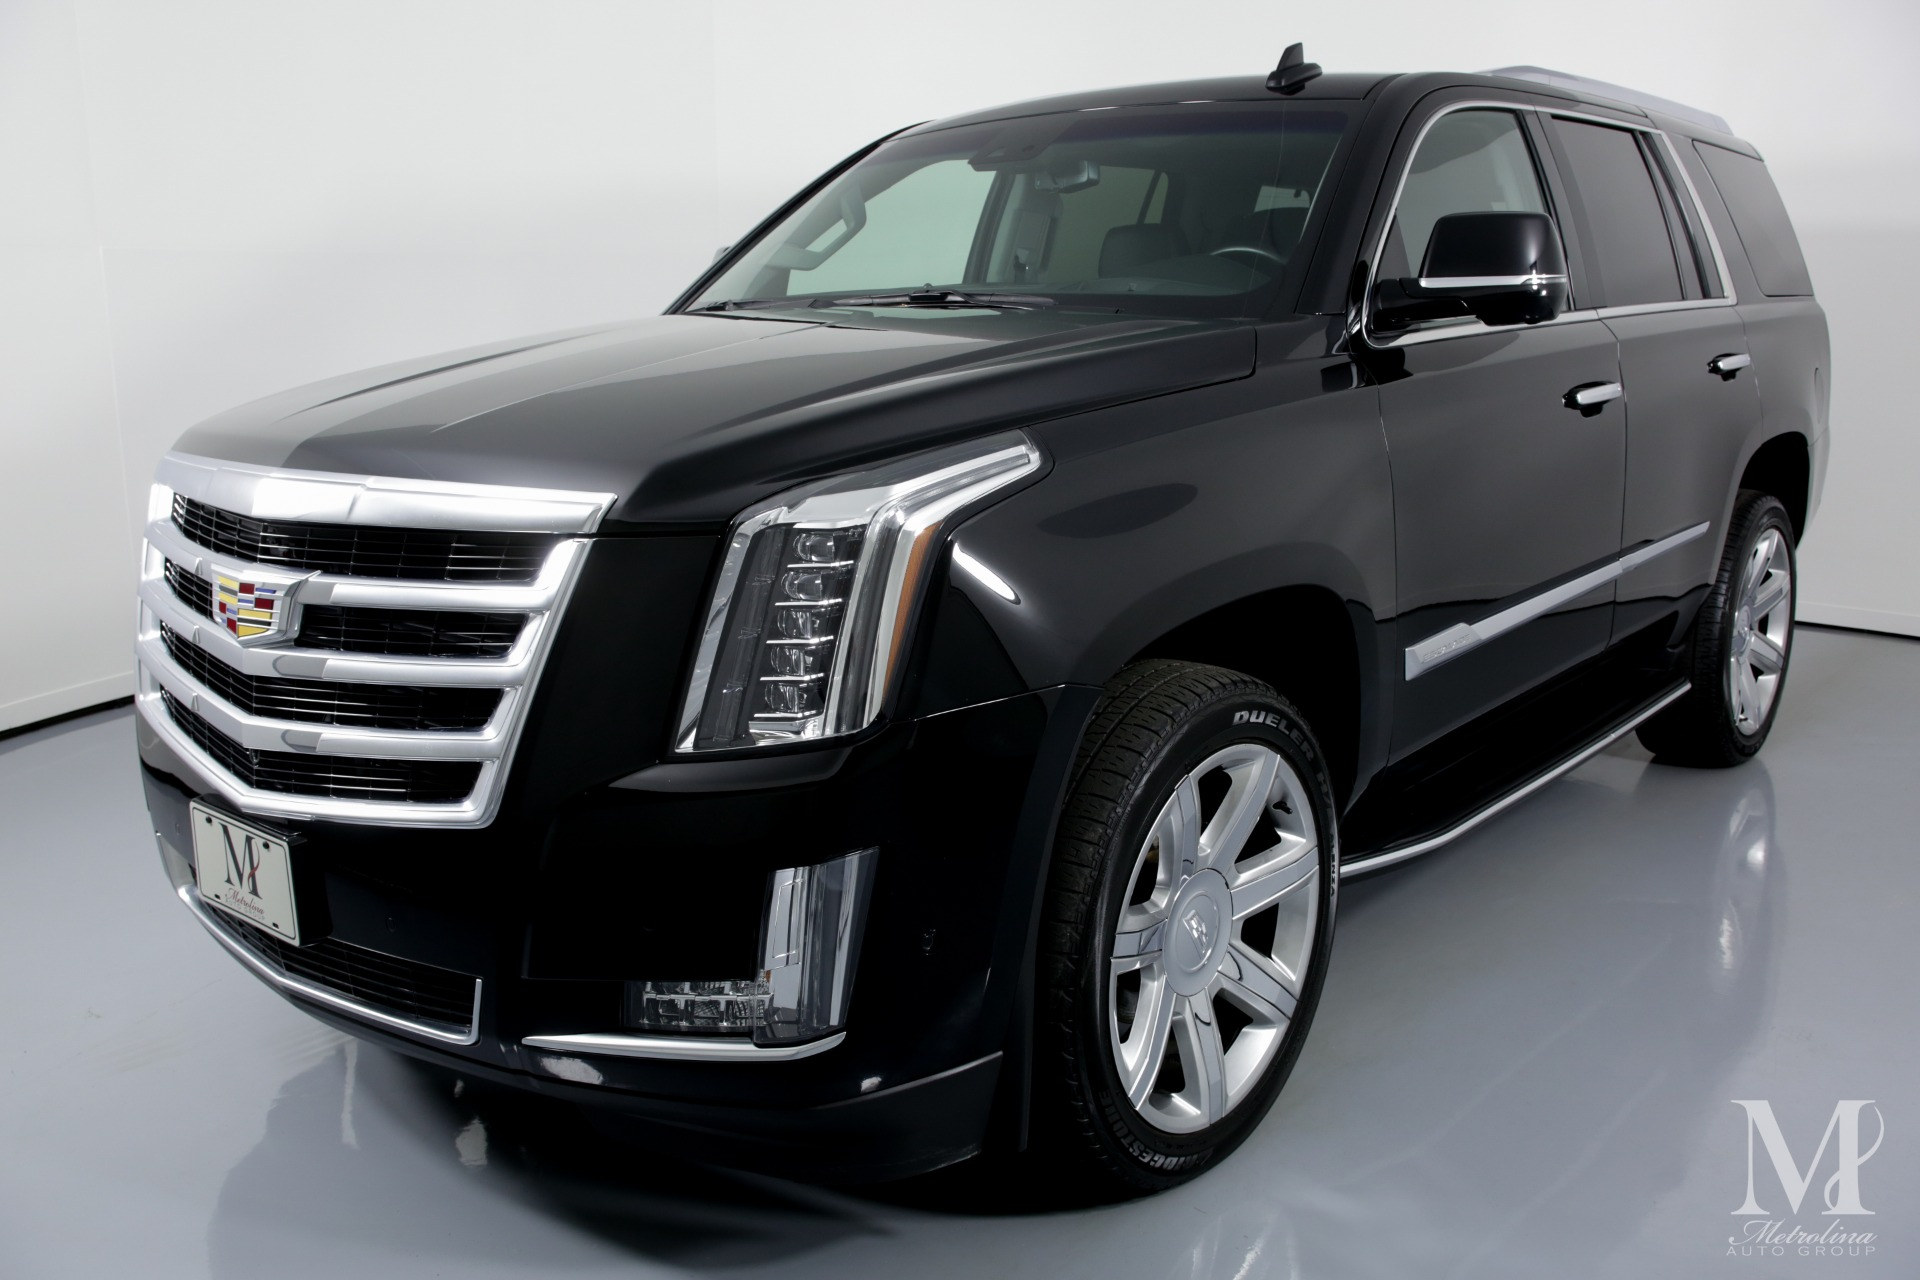 Used 2017 Cadillac Escalade Luxury 4x4 4dr SUV for sale $44,996 at Metrolina Auto Group in Charlotte NC 28217 - 4